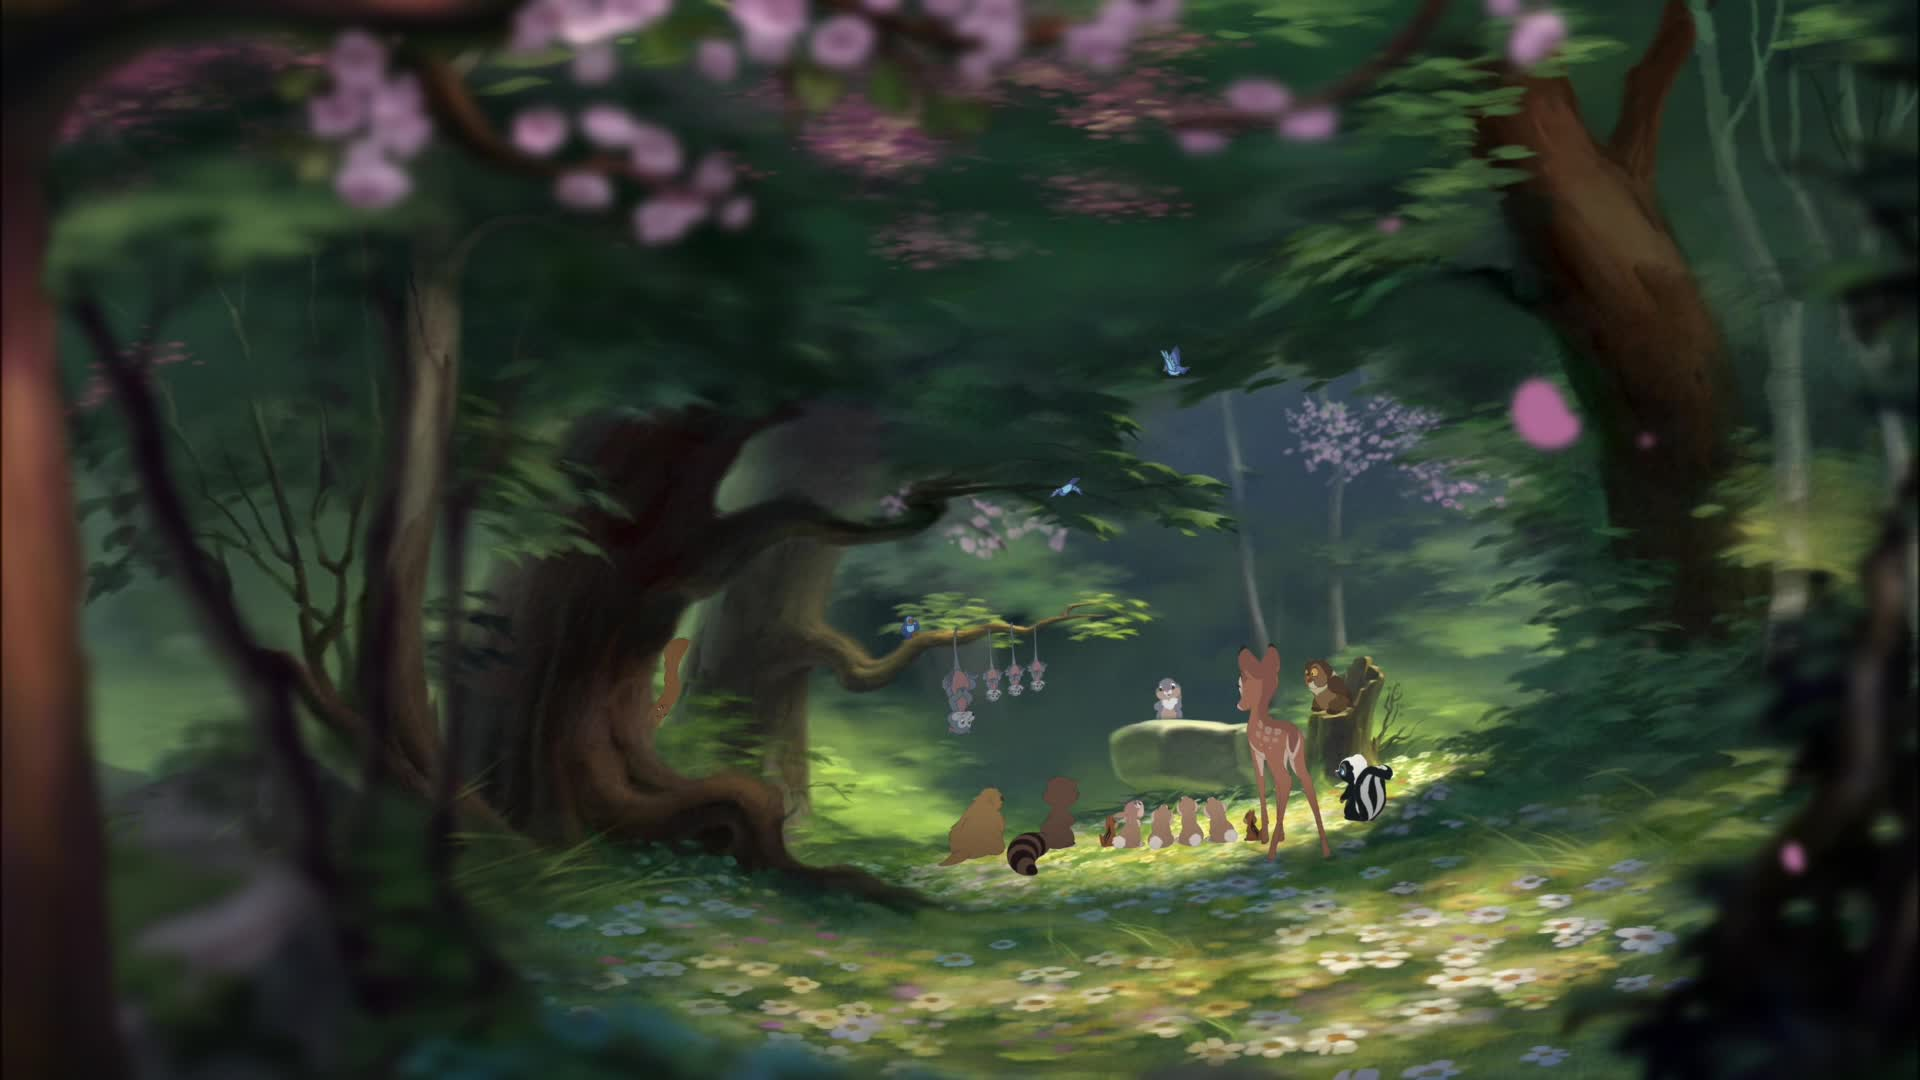 https://www.animationsource.org/sites_content/bambi/img_screenshot/115034.jpg